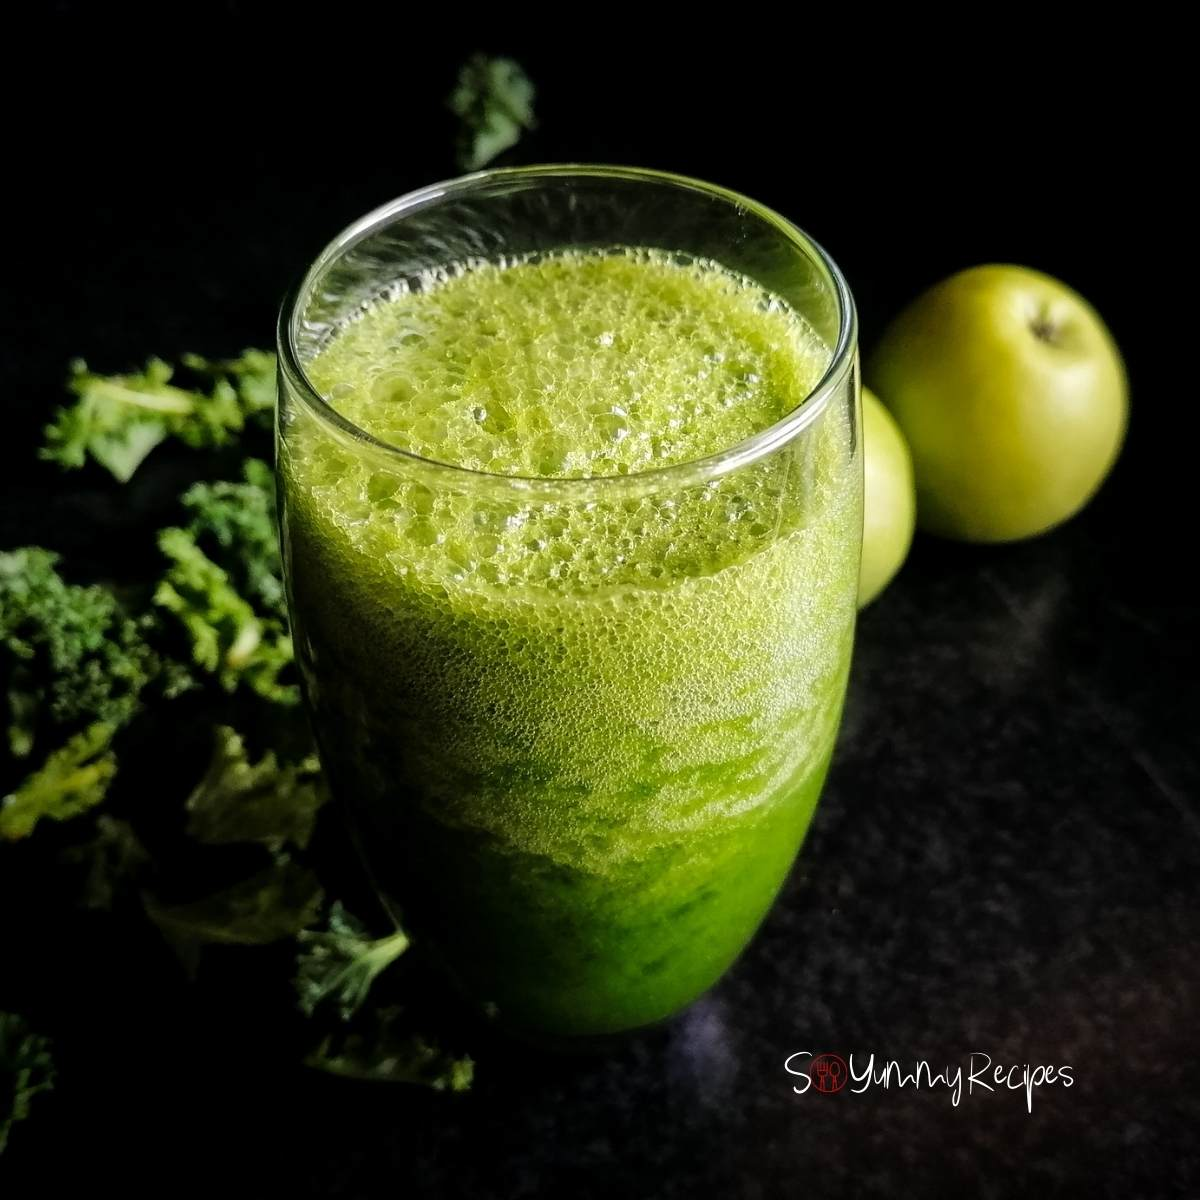 a glass of green apple and kale smoothie with apples and some kale leaves on the background